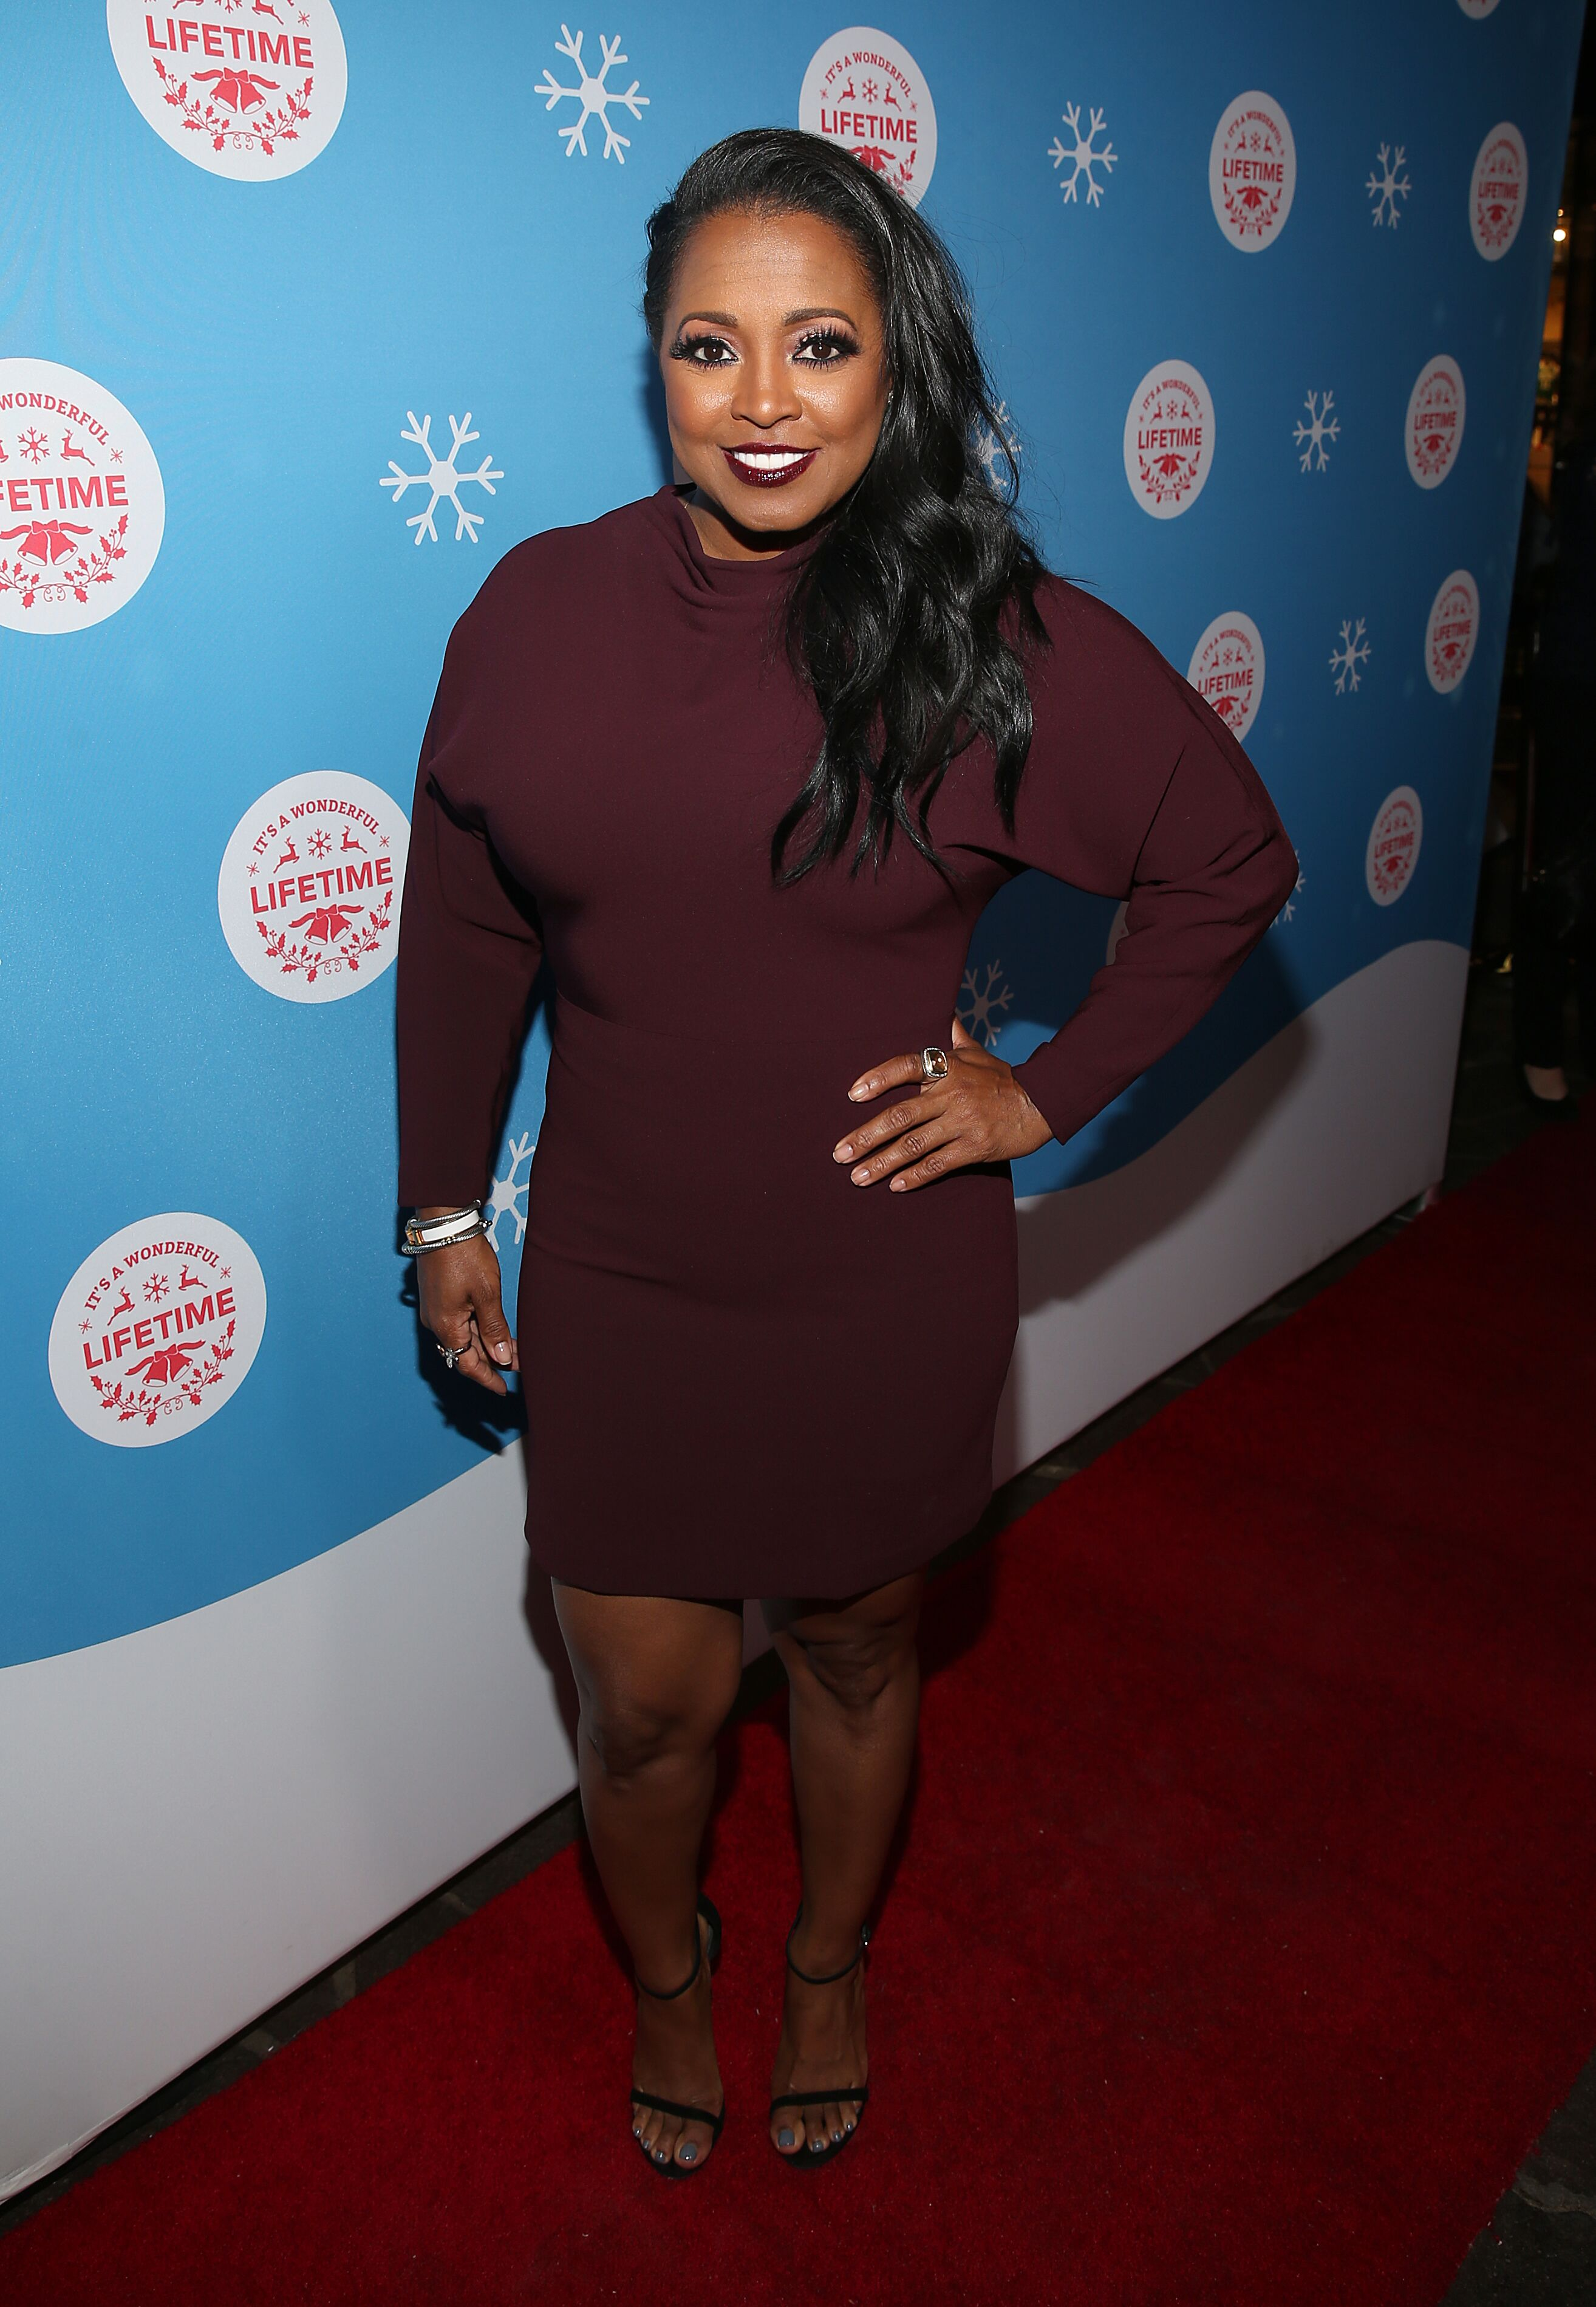 """Keshia Knight Pulliam attends the VIP opening night of the life-sized gingerbread house in celebration of """"It's A Wonderful Lifetime"""" at The Grove on November 14, 2018 